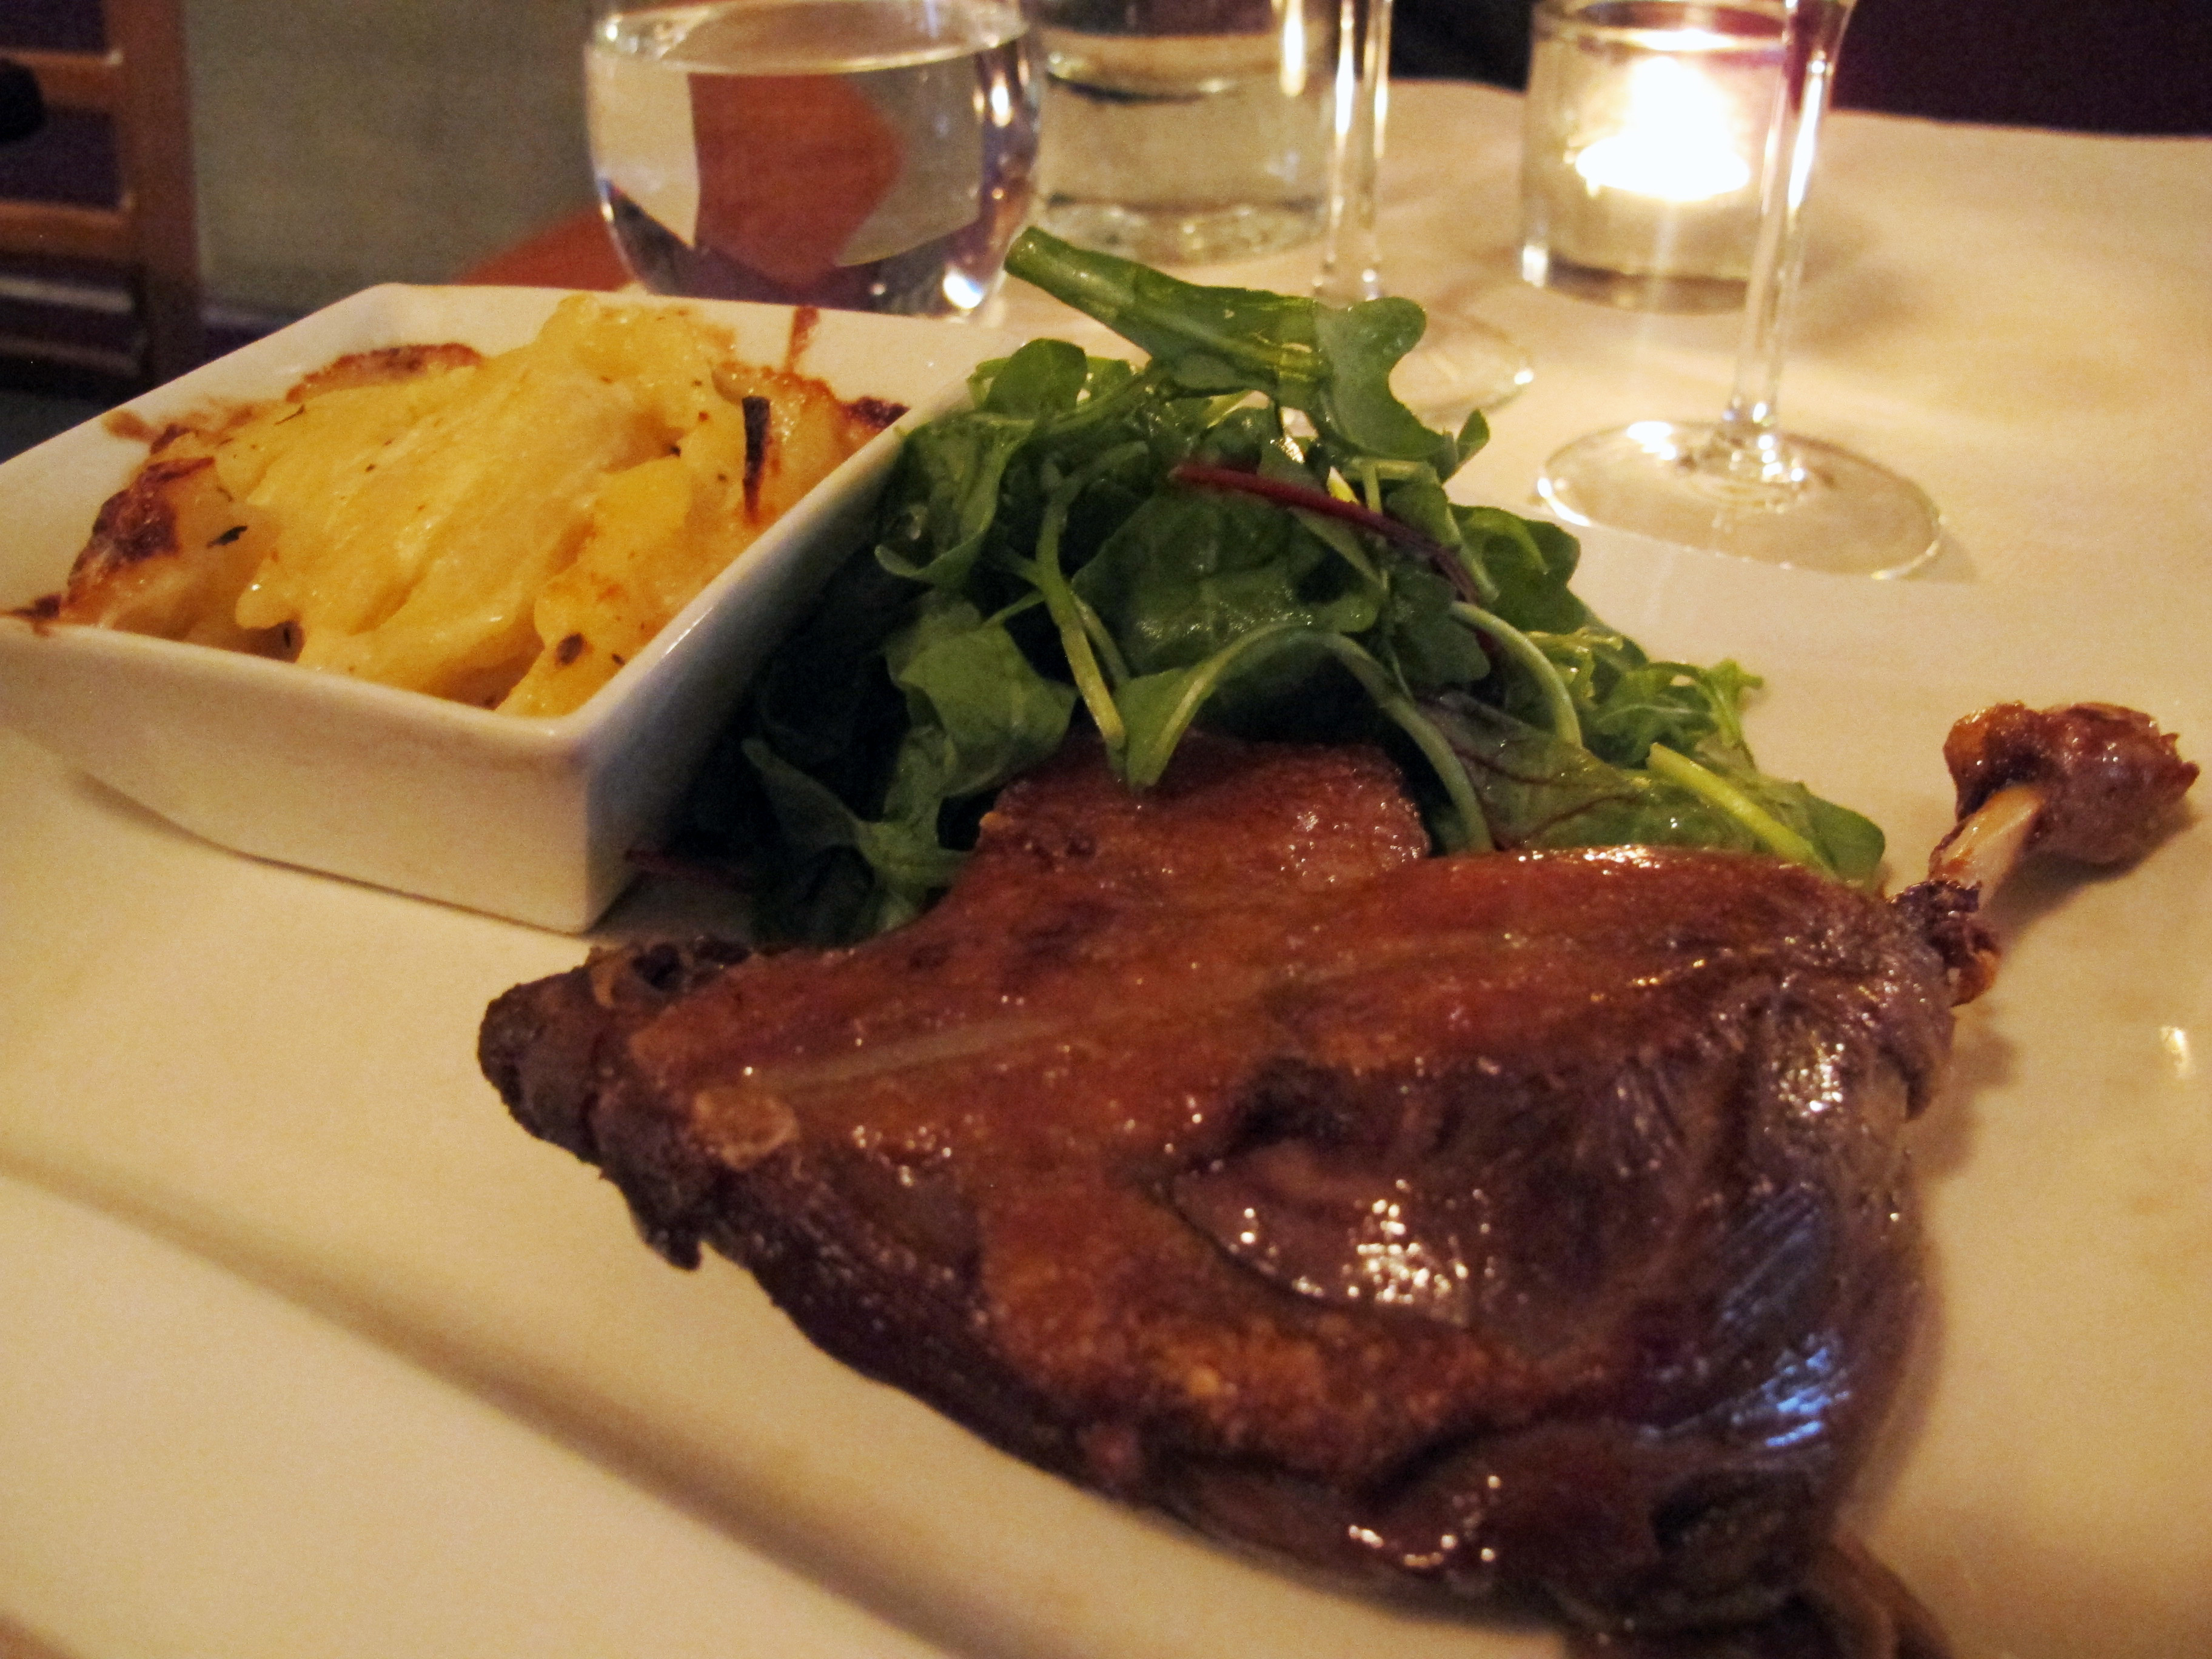 Dinner In French  An authentic French dinner My last meal in Paris